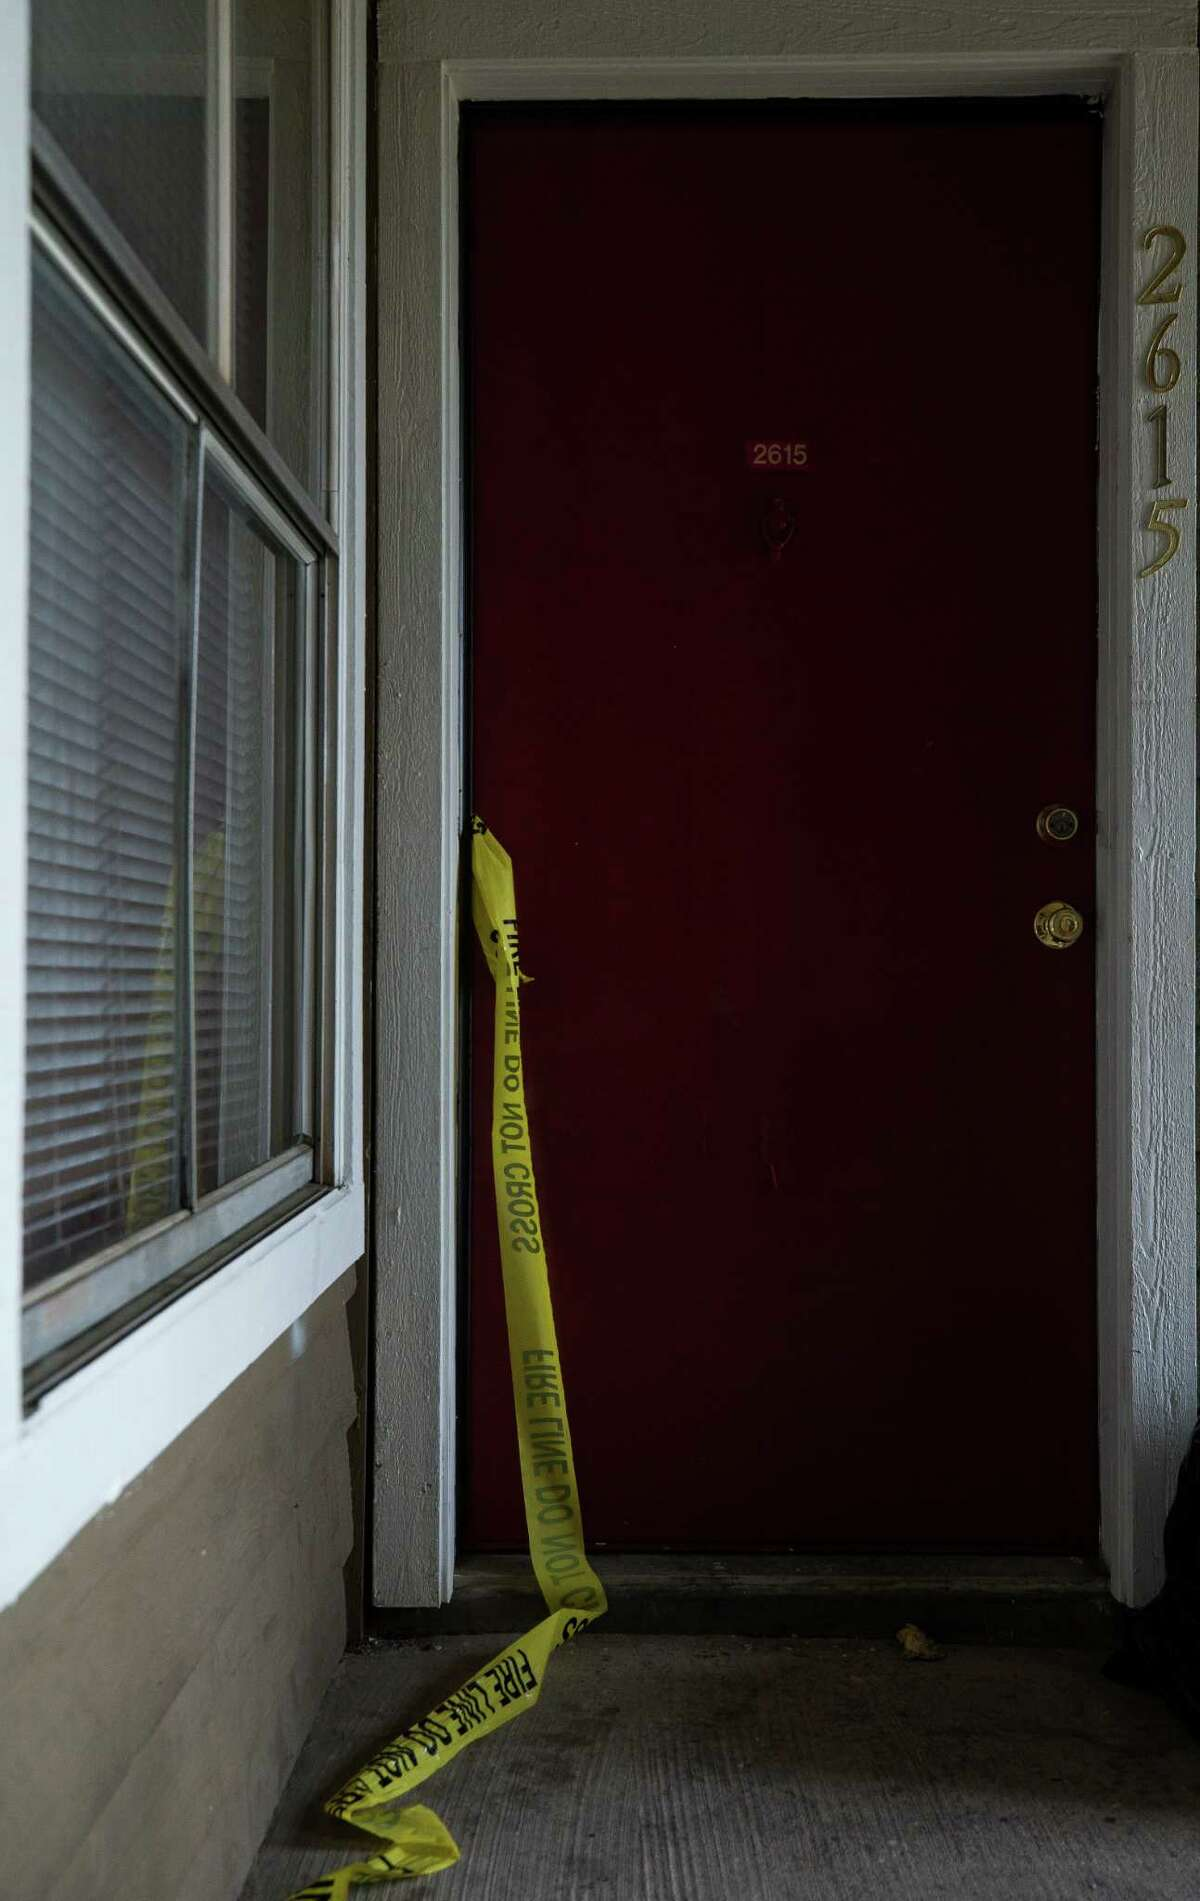 Crime tape left at the scene of a fire at the Cozumel Apartments complex Monday, March 11, 2019. A three-year-old boy died in the fire.